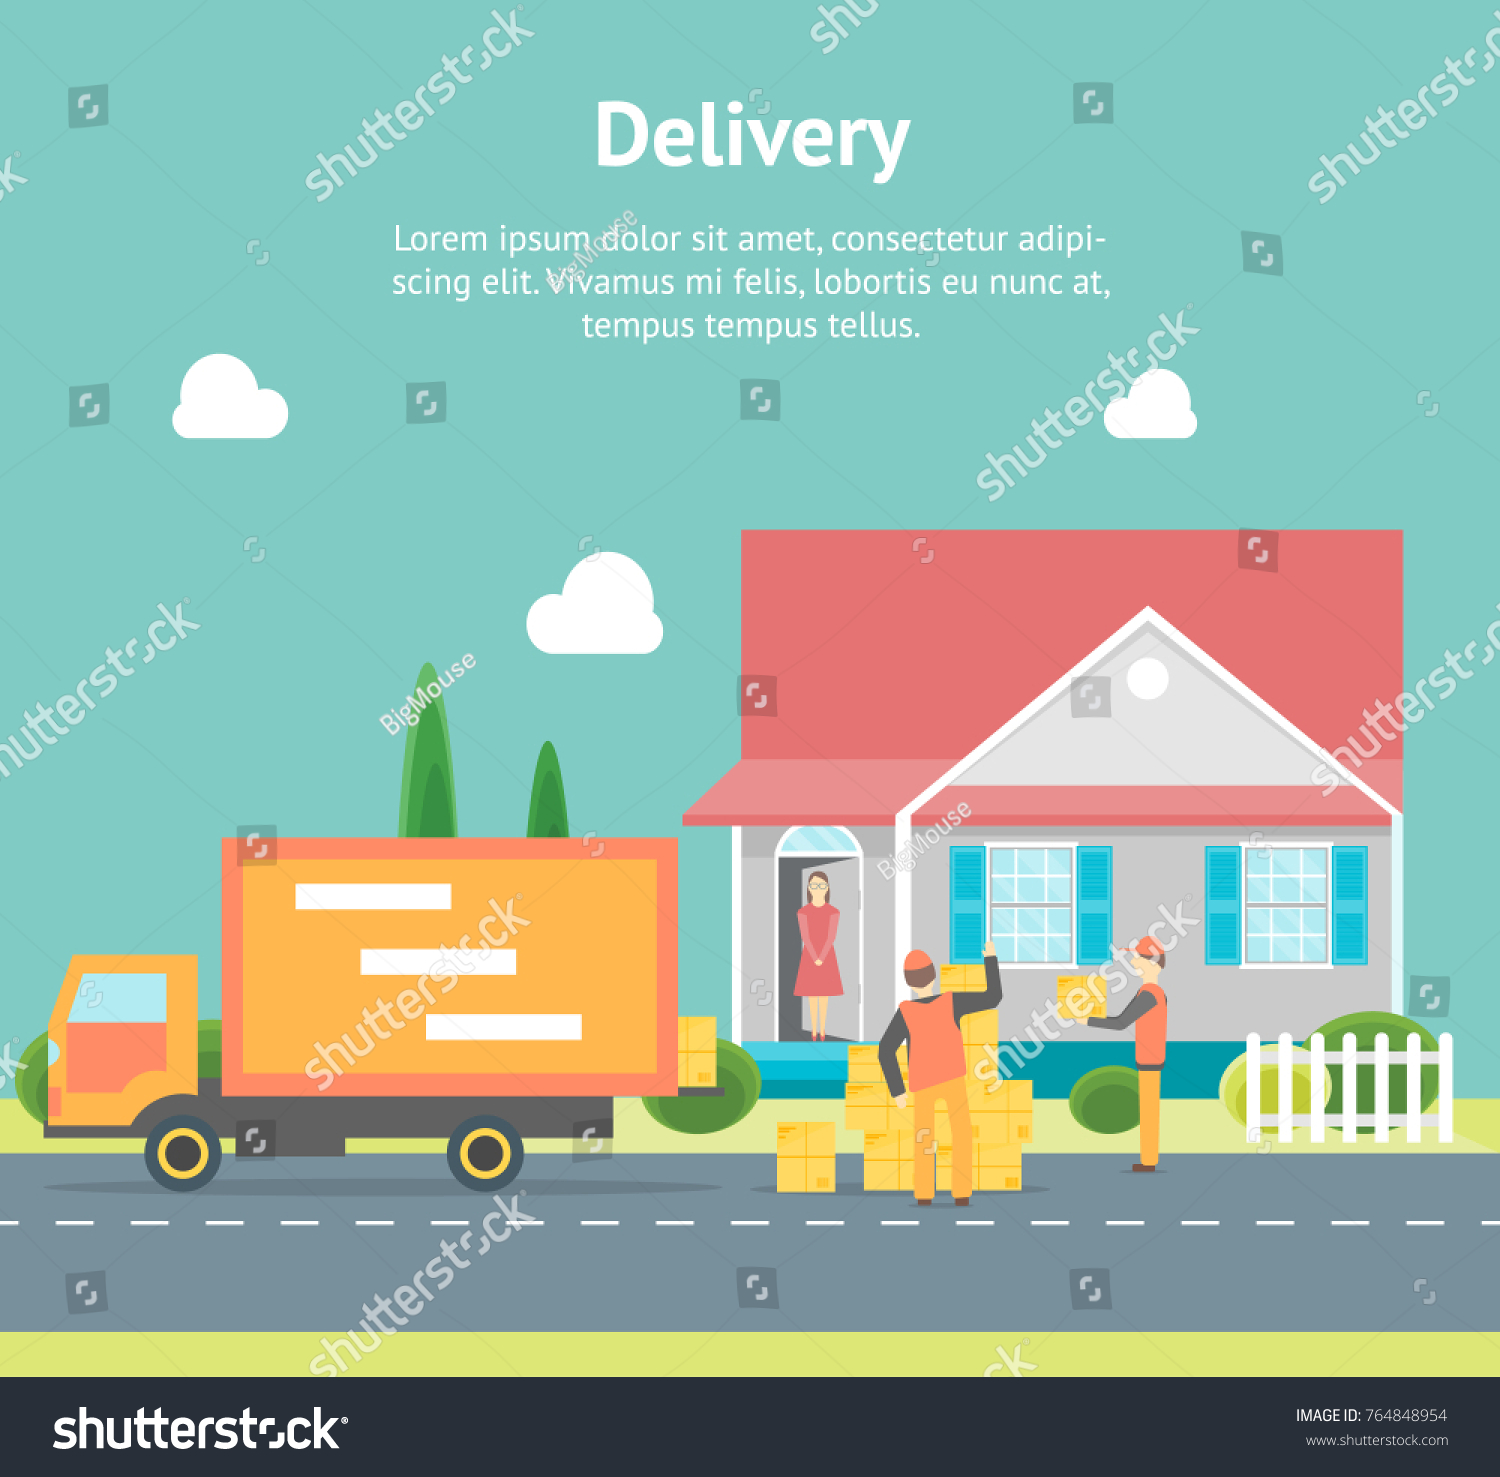 Cartoon Express Delivery Transportation Logistic Service Stock ...